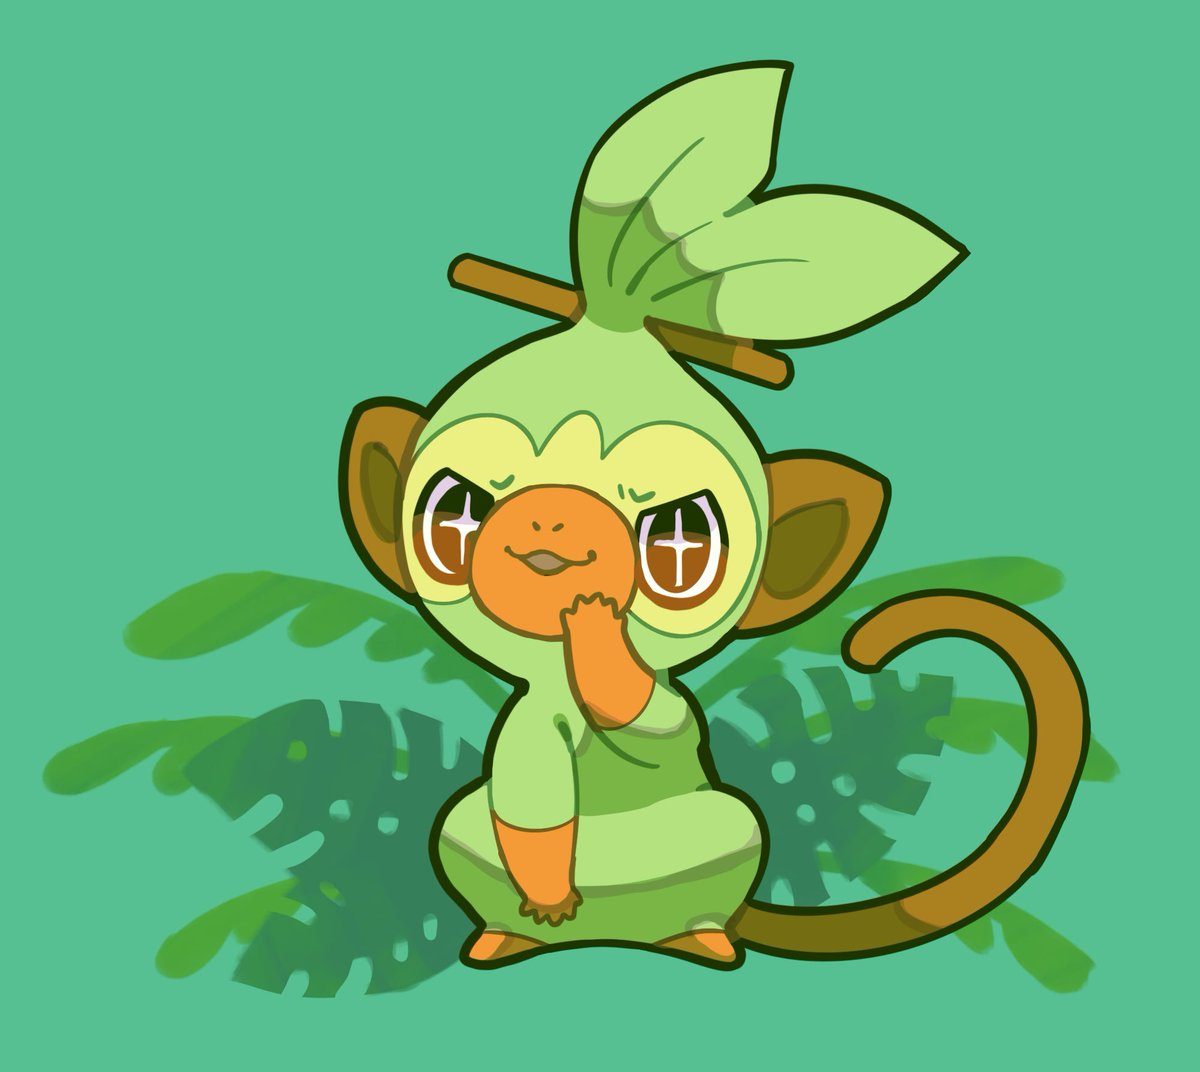 Tori Png Mx Paint Ita Bag On Twitter Mischief Grookey Pokemonsword Pokemonshield As a result, this repository only contains groovy examples that connect to m2x using the java client library. twitter